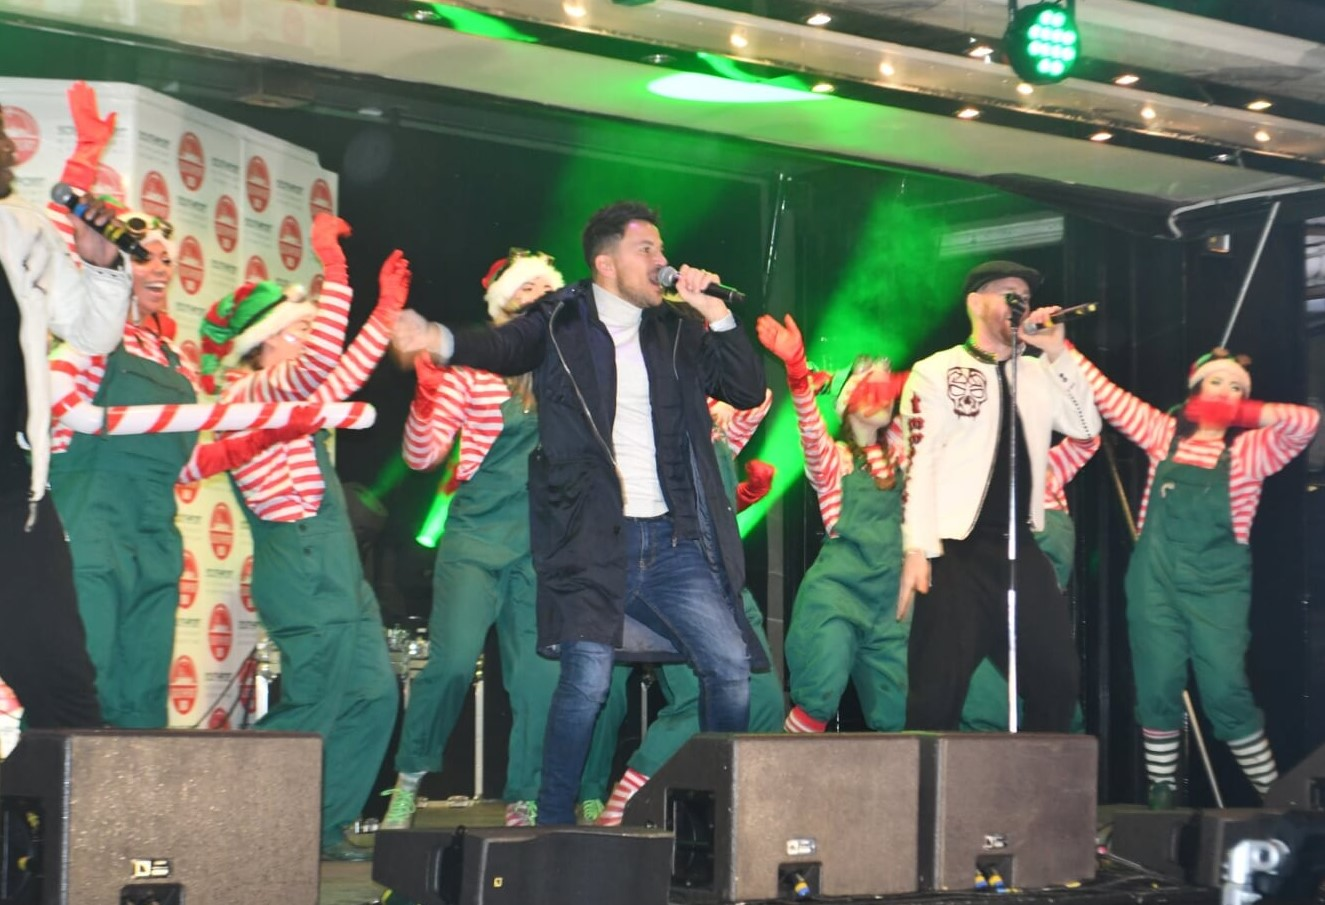 Southport festive switch-on event cancelled